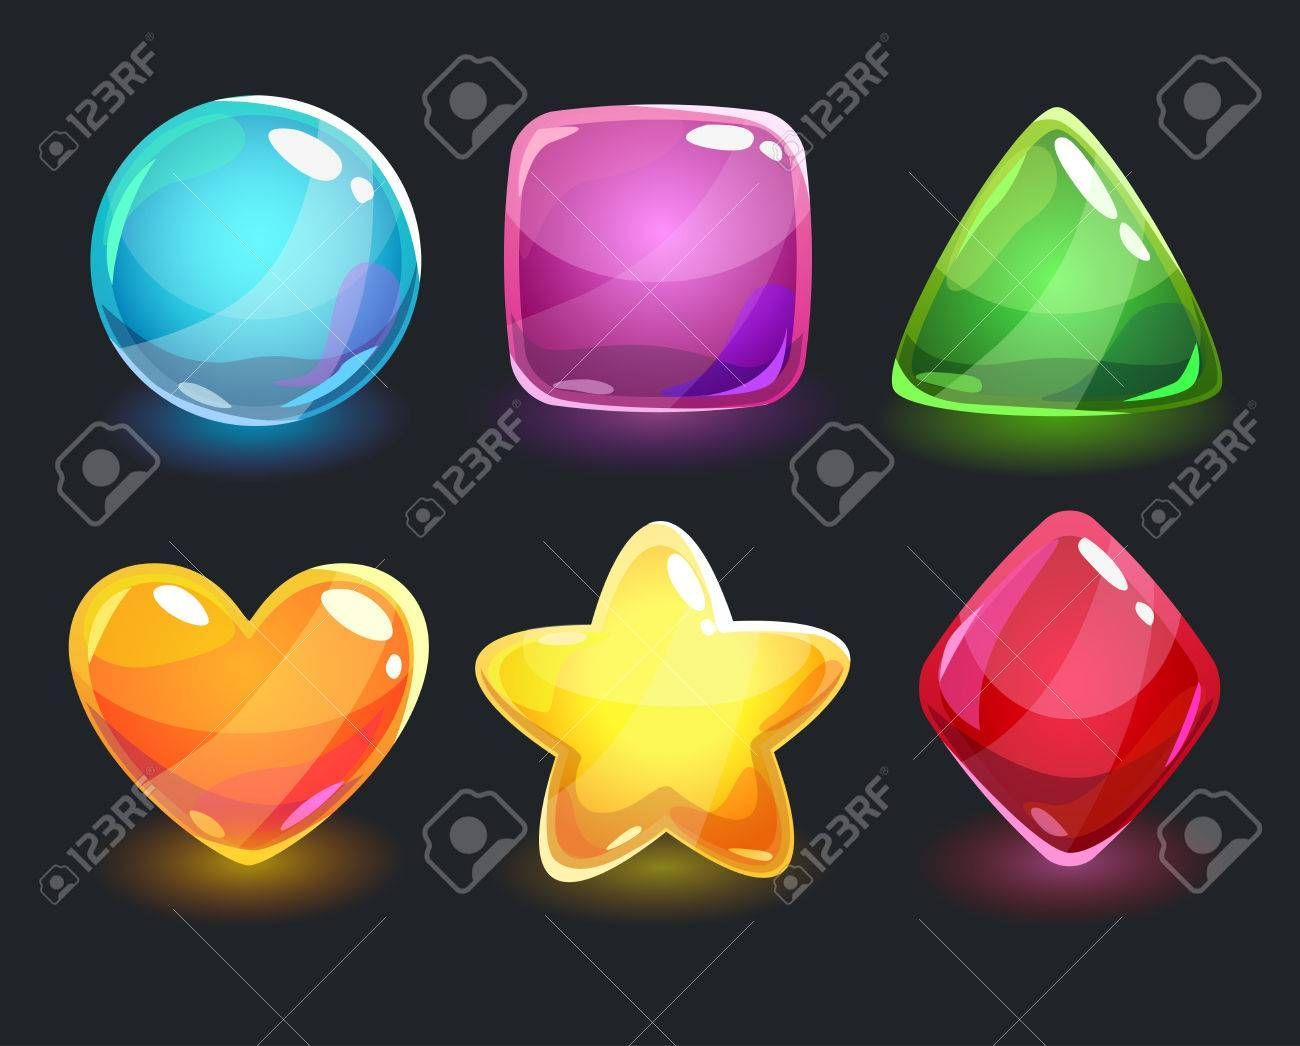 Cool shiny glossy colorful shapes, vector assets for gui design